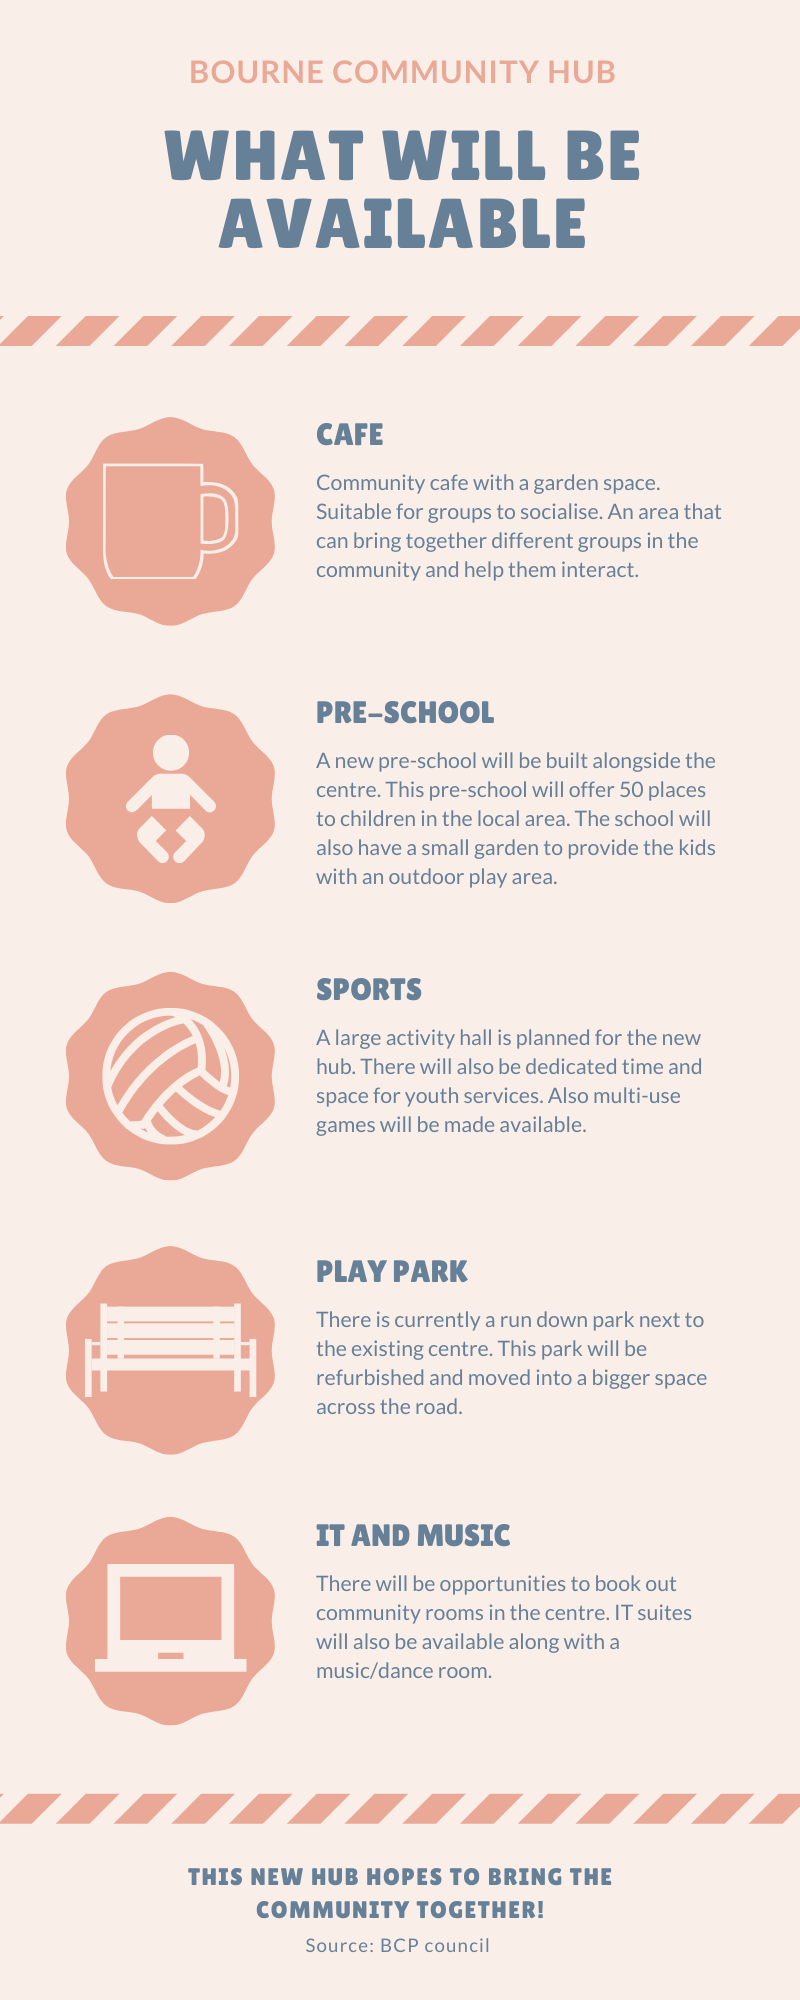 Infographic showing what will be available at the new community hub